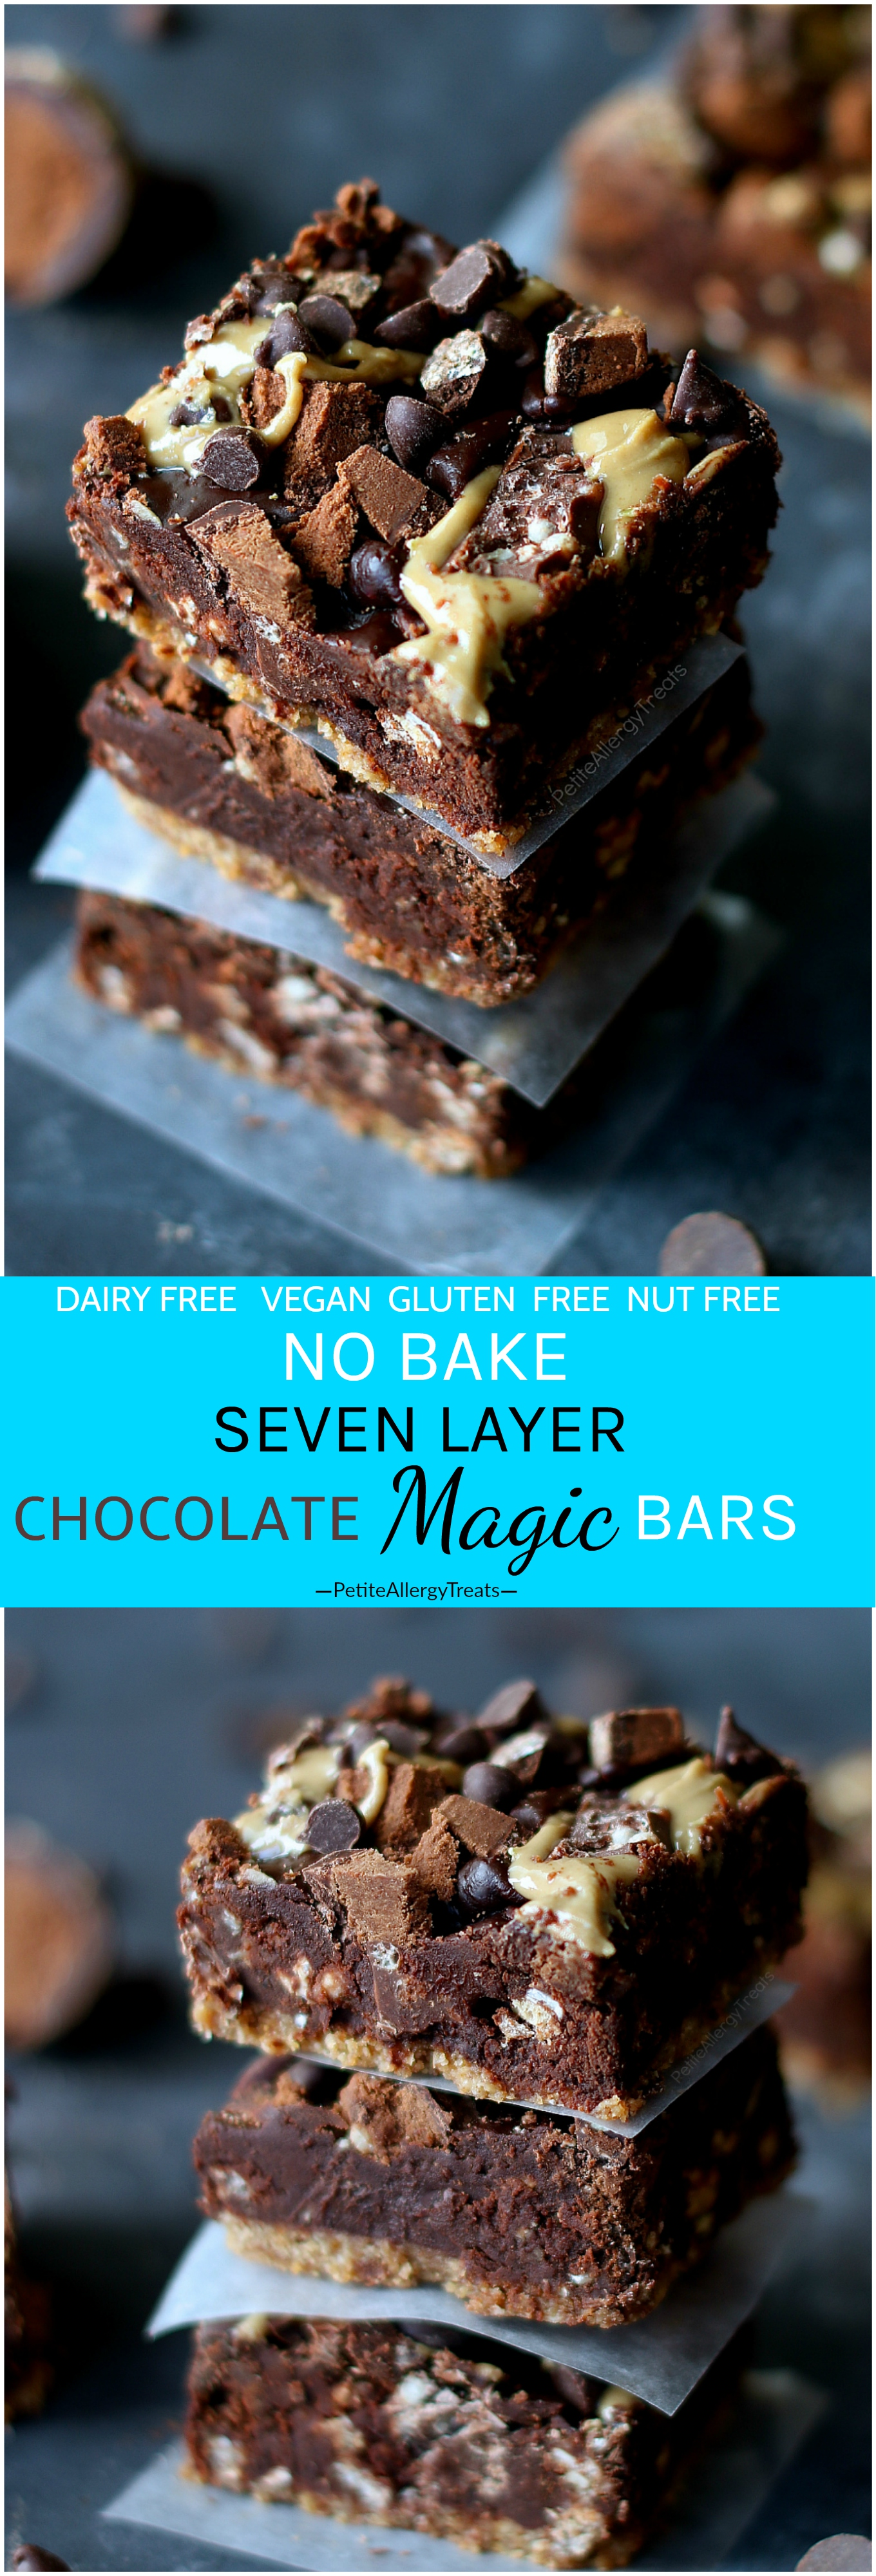 No Bake Vegan Magic Bars Recipe ( Dairy Free Gluten Free)- No bake chocolate seven layer magic bars ready in 15 mins! No coconut and food allergy friendly!